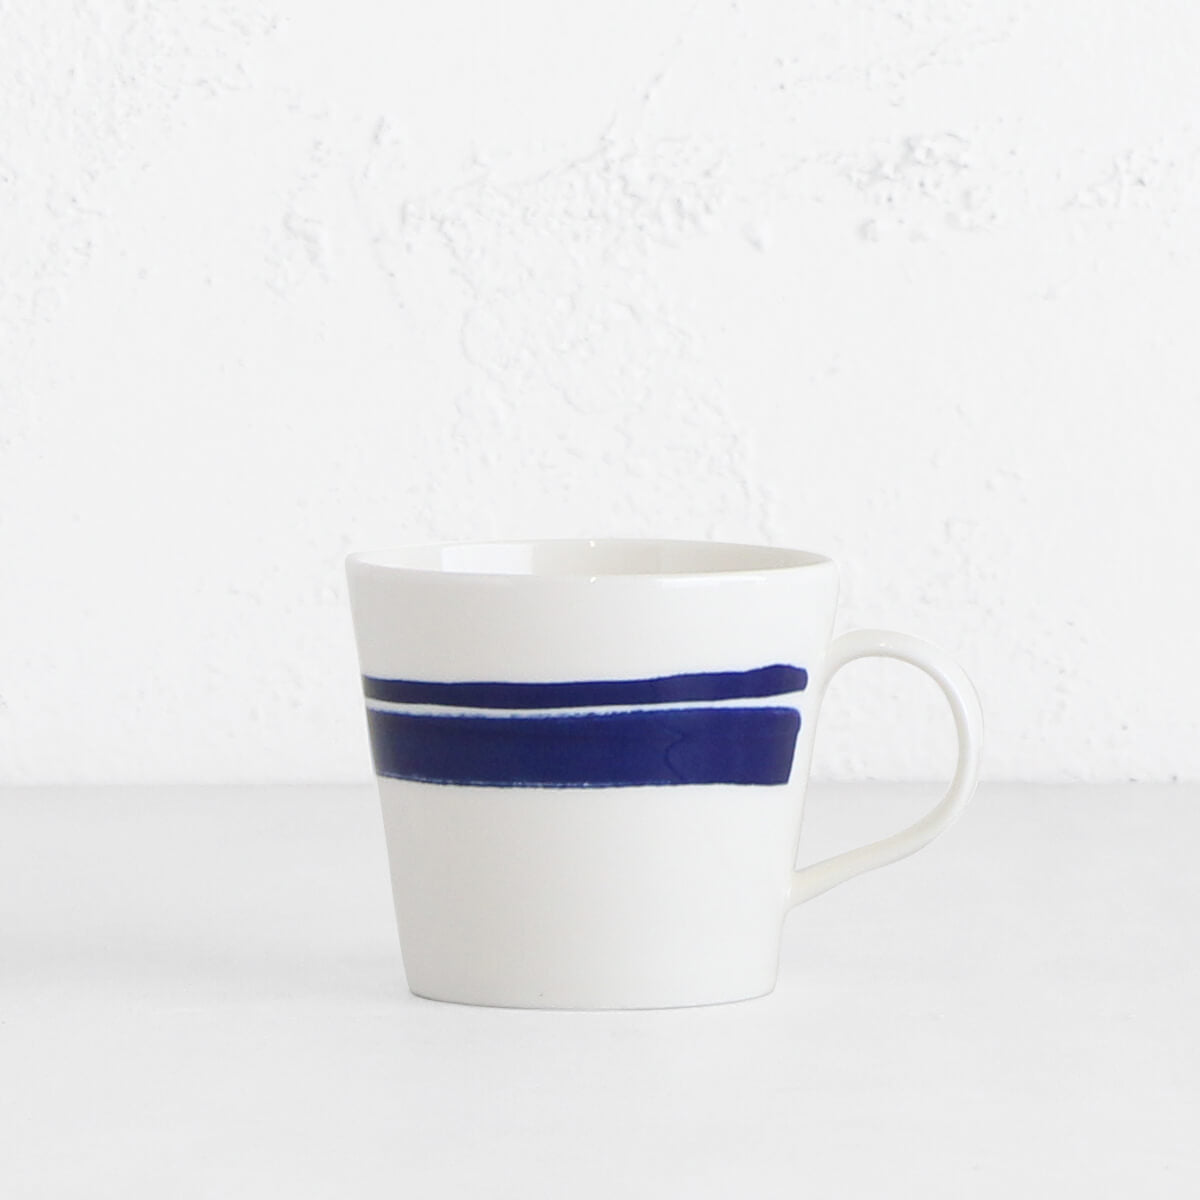 ROYAL DOULTON  | MUG  |  BLUE BRUSH ON WHITE